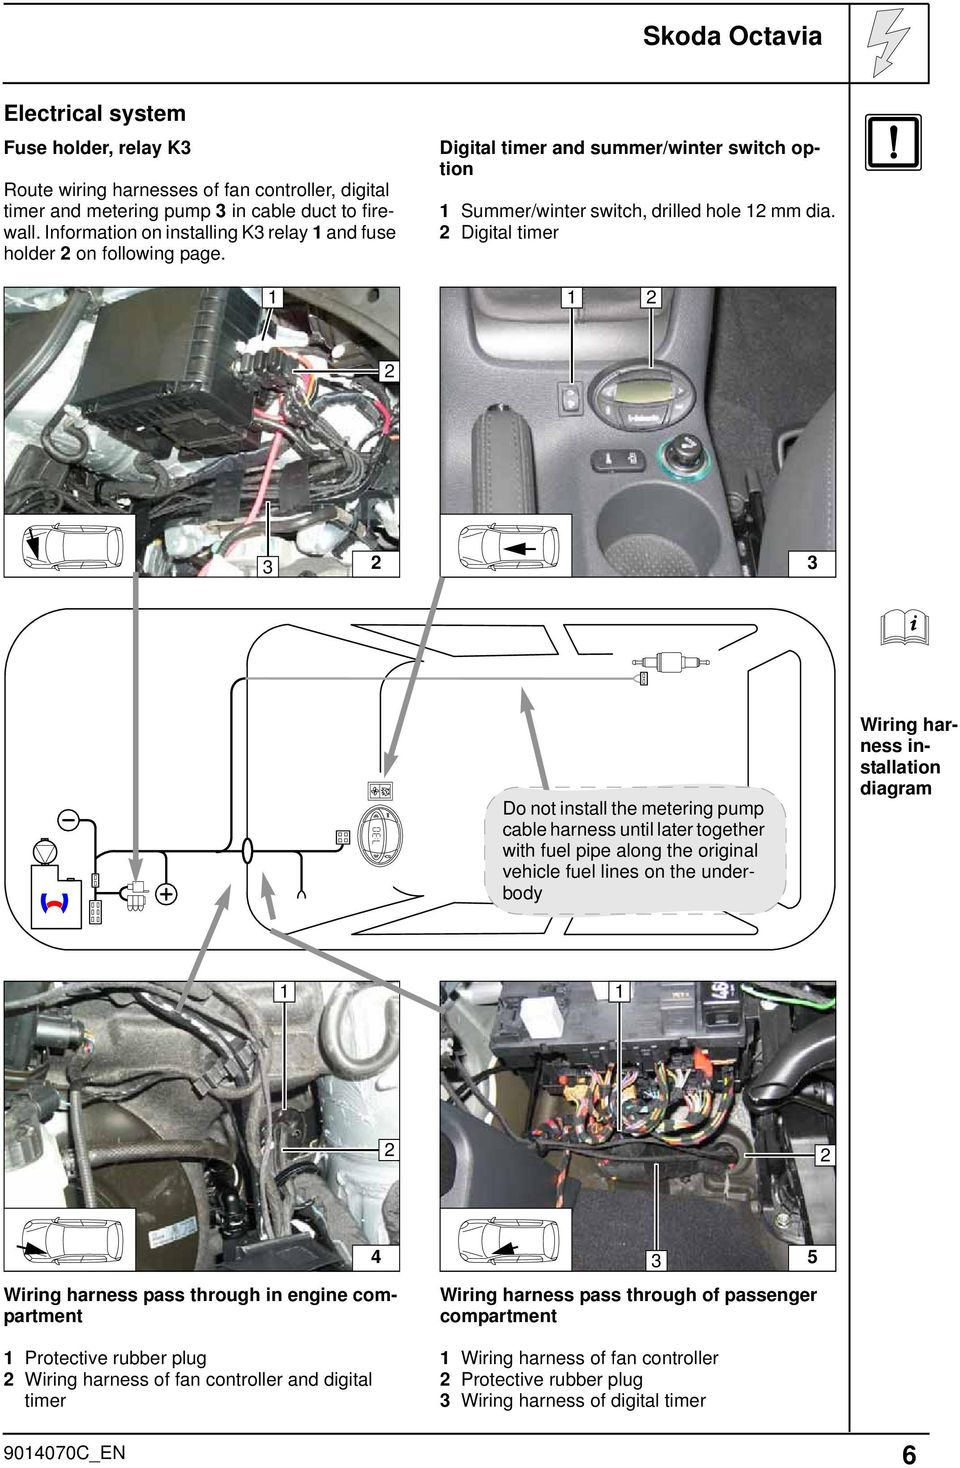 Always Follow All Webasto Installation And Repair Instructions Vw Jetta Vr6 Engine Diagram Additionally On Harley Fuel Pet Digital Timer Do Not Install The Metering Pump Cable Harness Until Later Together With Pipe